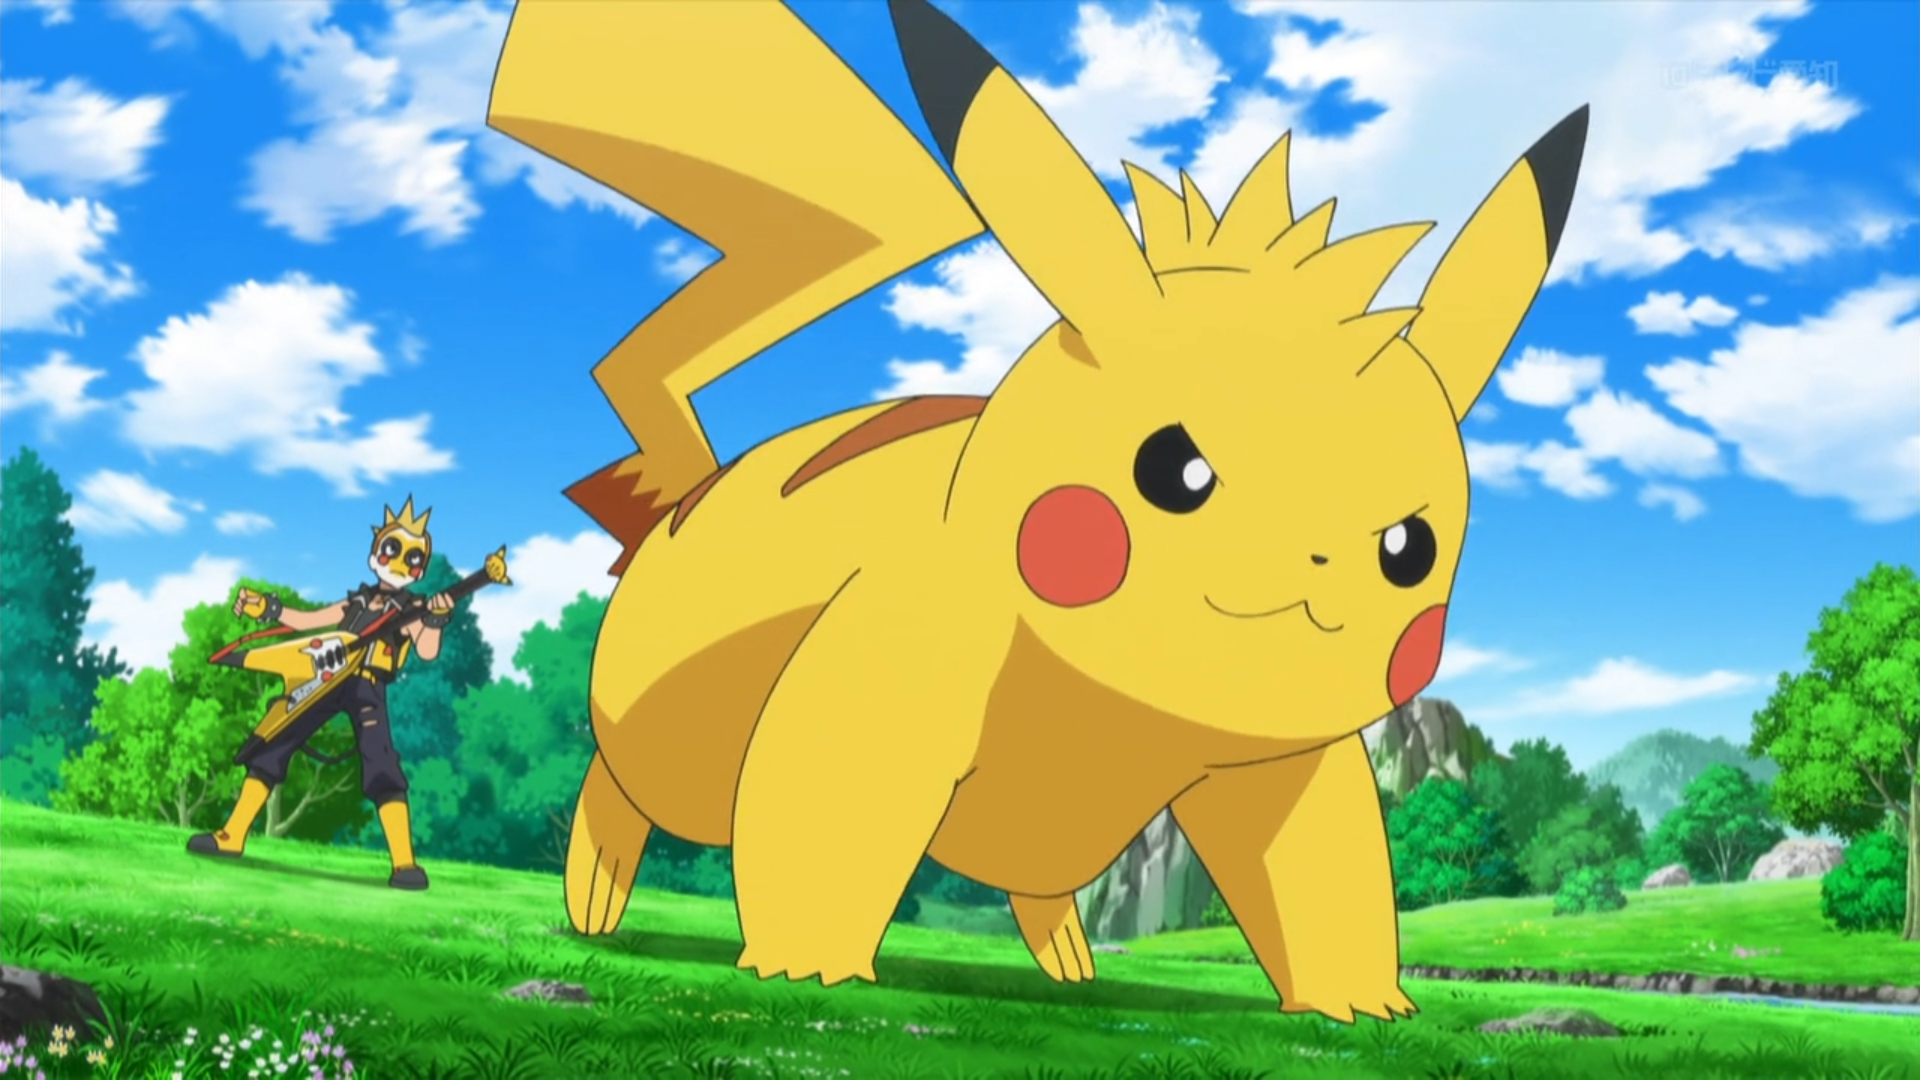 Jimmy had a Pikachu with a mohawk hairstyle, nicknamed Spike. Jimmy used Spike to battle against Serena and Pikachu.